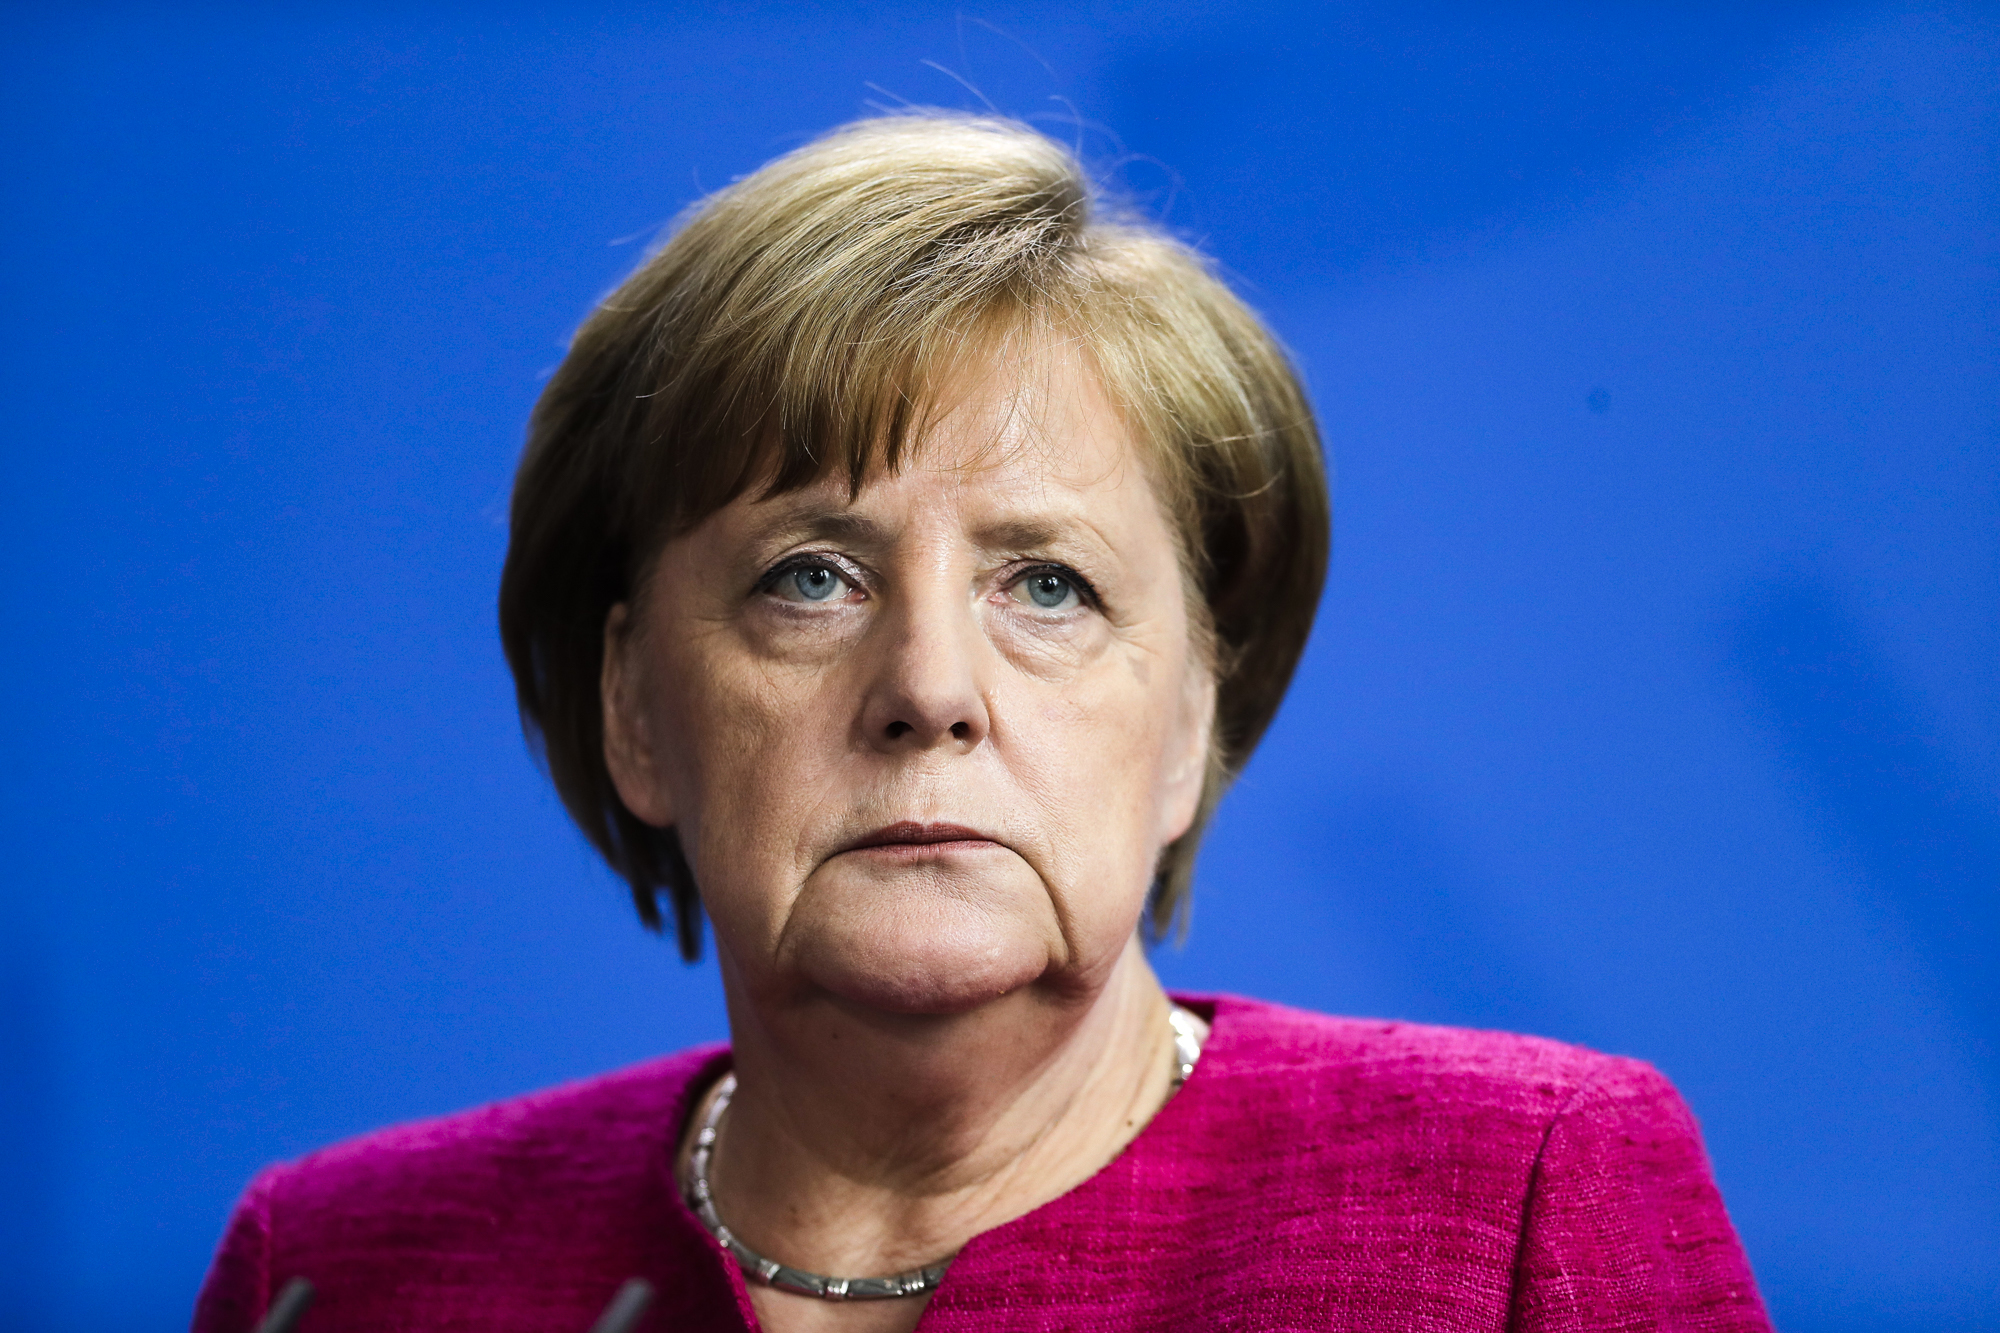 Crisis averted? Minister says migrant row with Merkel can be overcome